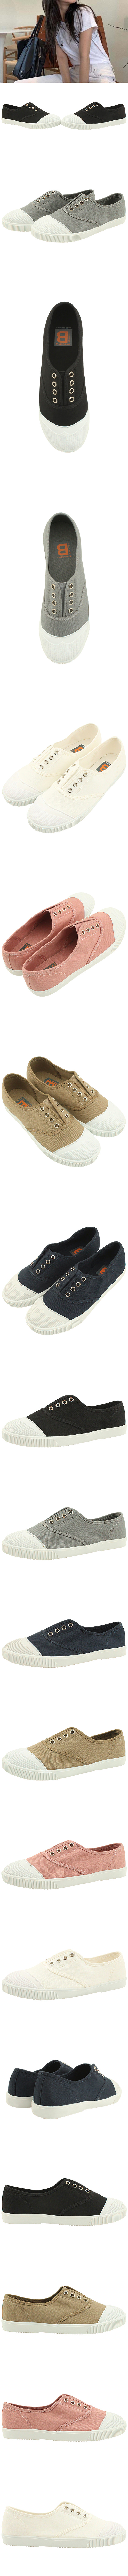 Canvas Shoes Cotton Casual Sneakers Beige